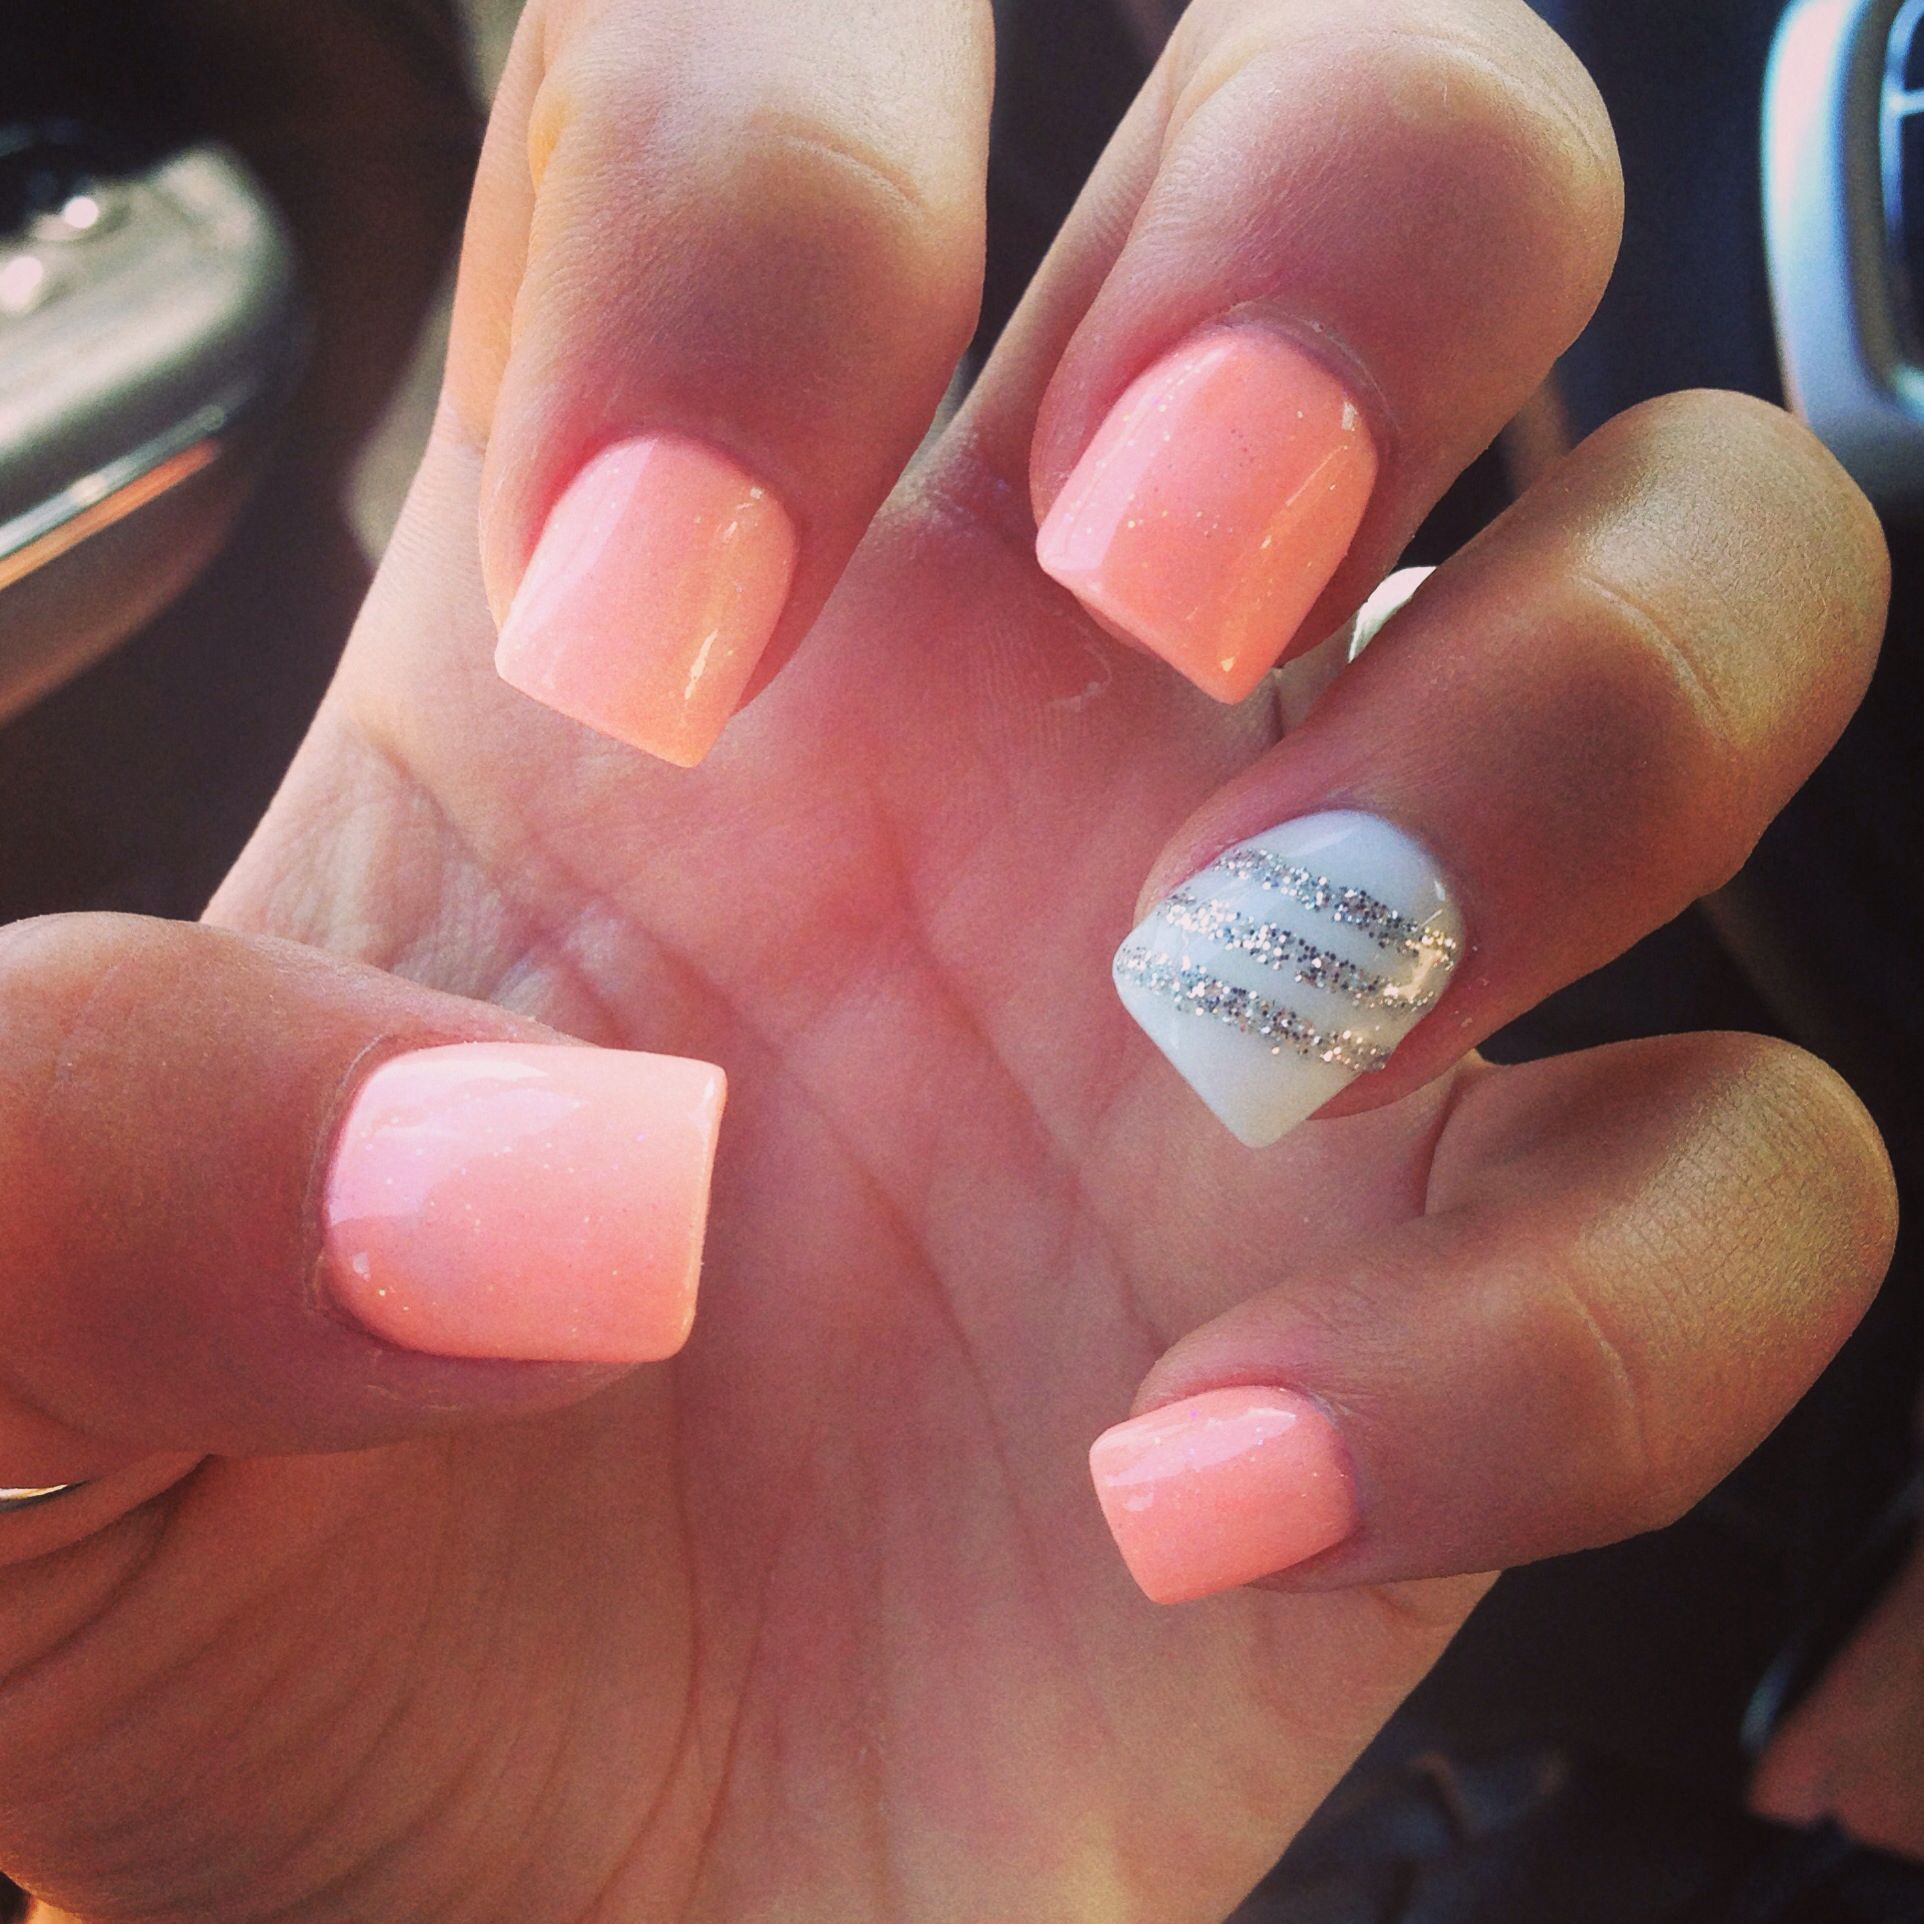 Summer Cute Spring Nails Https Womenhairstyle Net Summer Cute Spring Nails Html In 2020 Cute Spring Nails Nails For Kids Nails